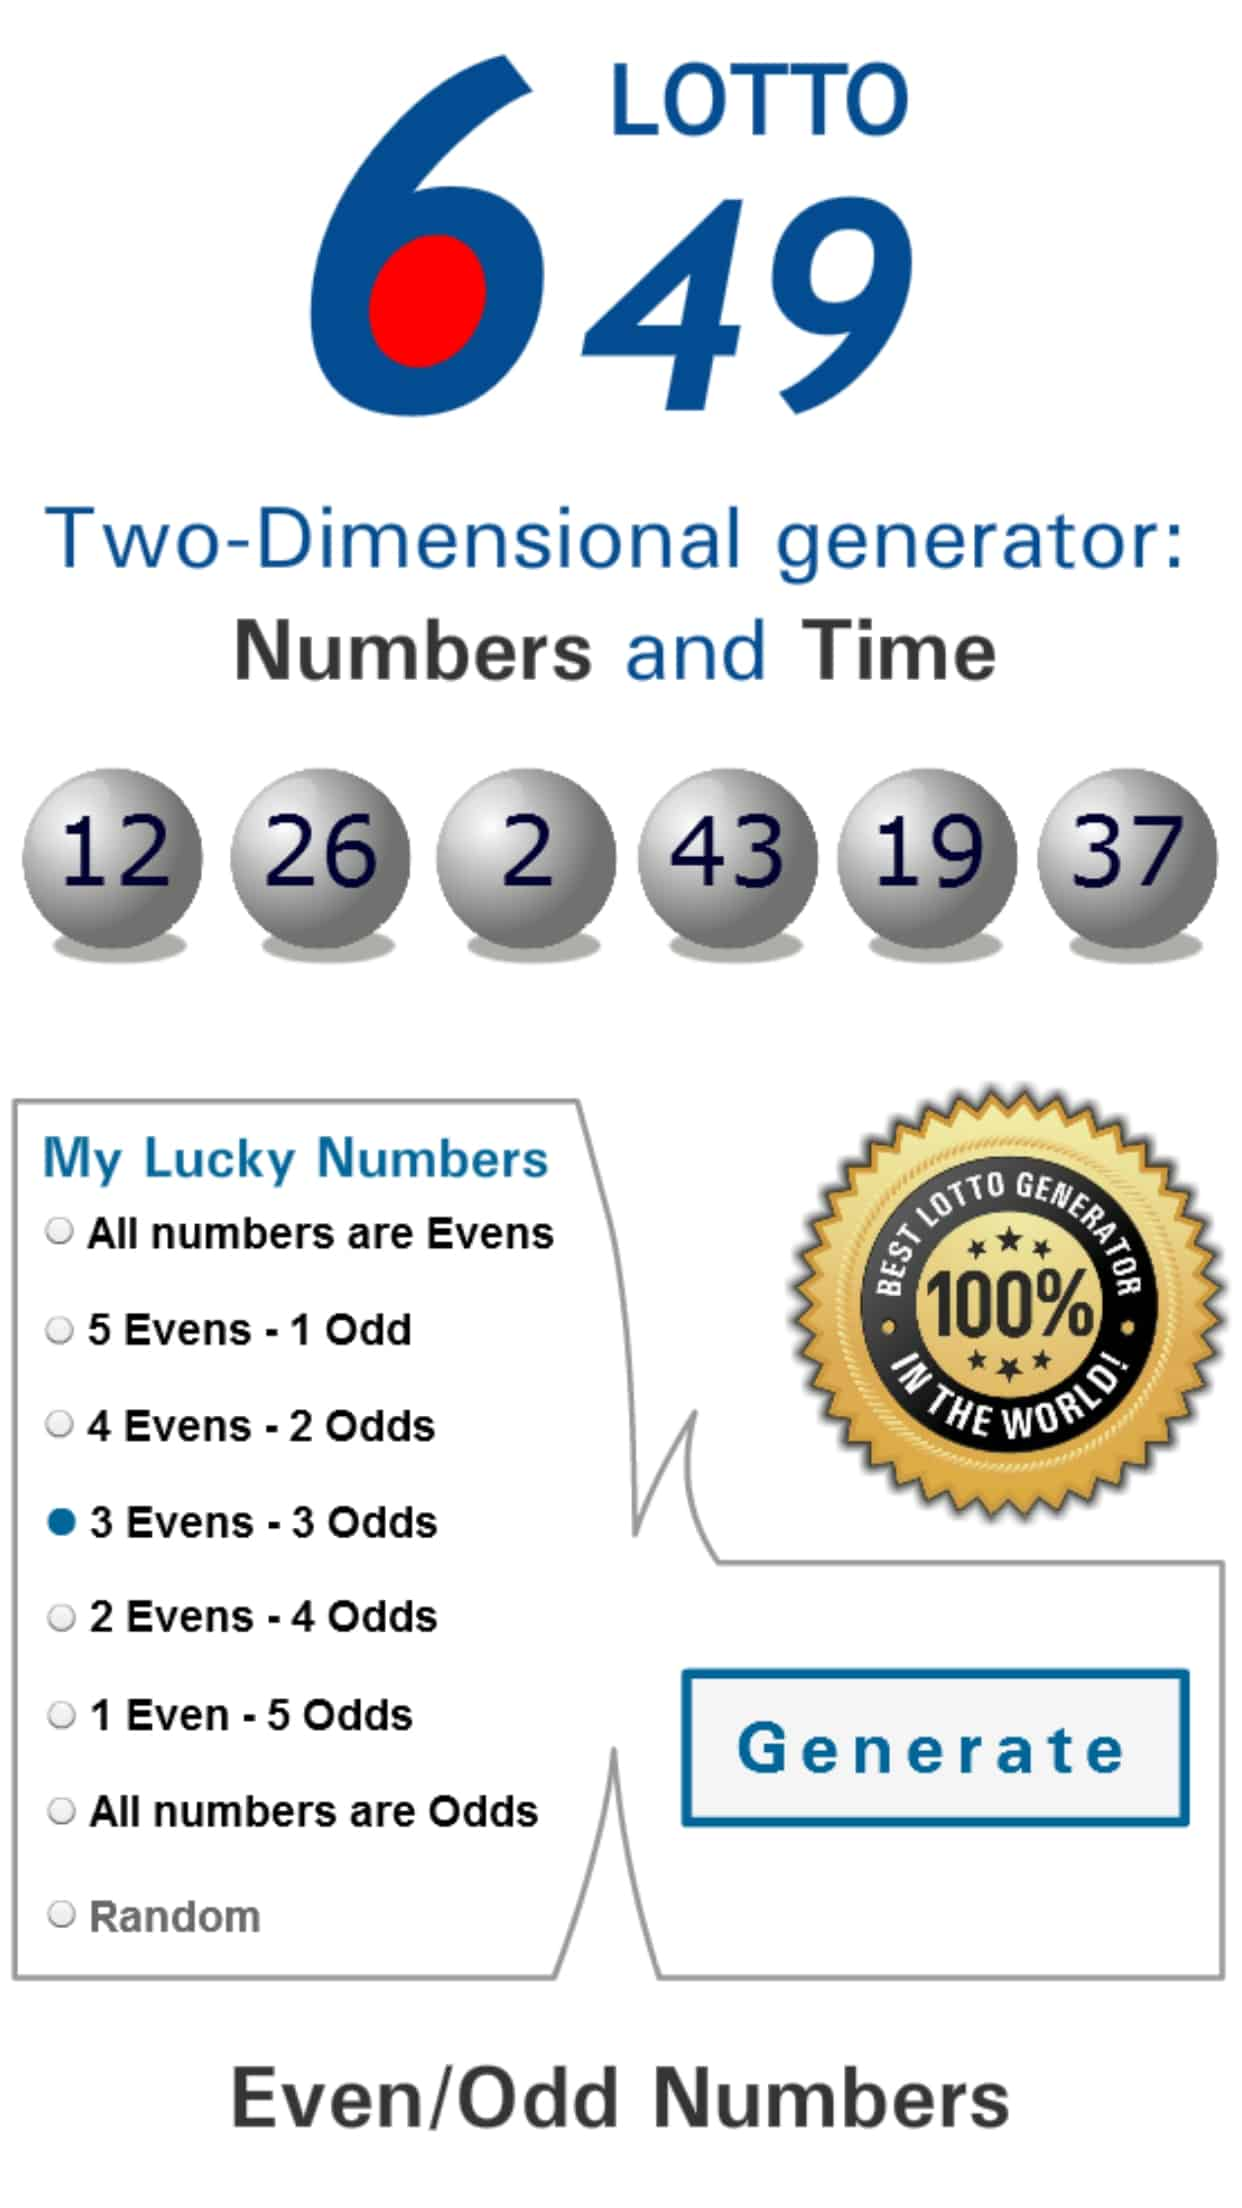 Best Lotto 649 Numbers To Pick